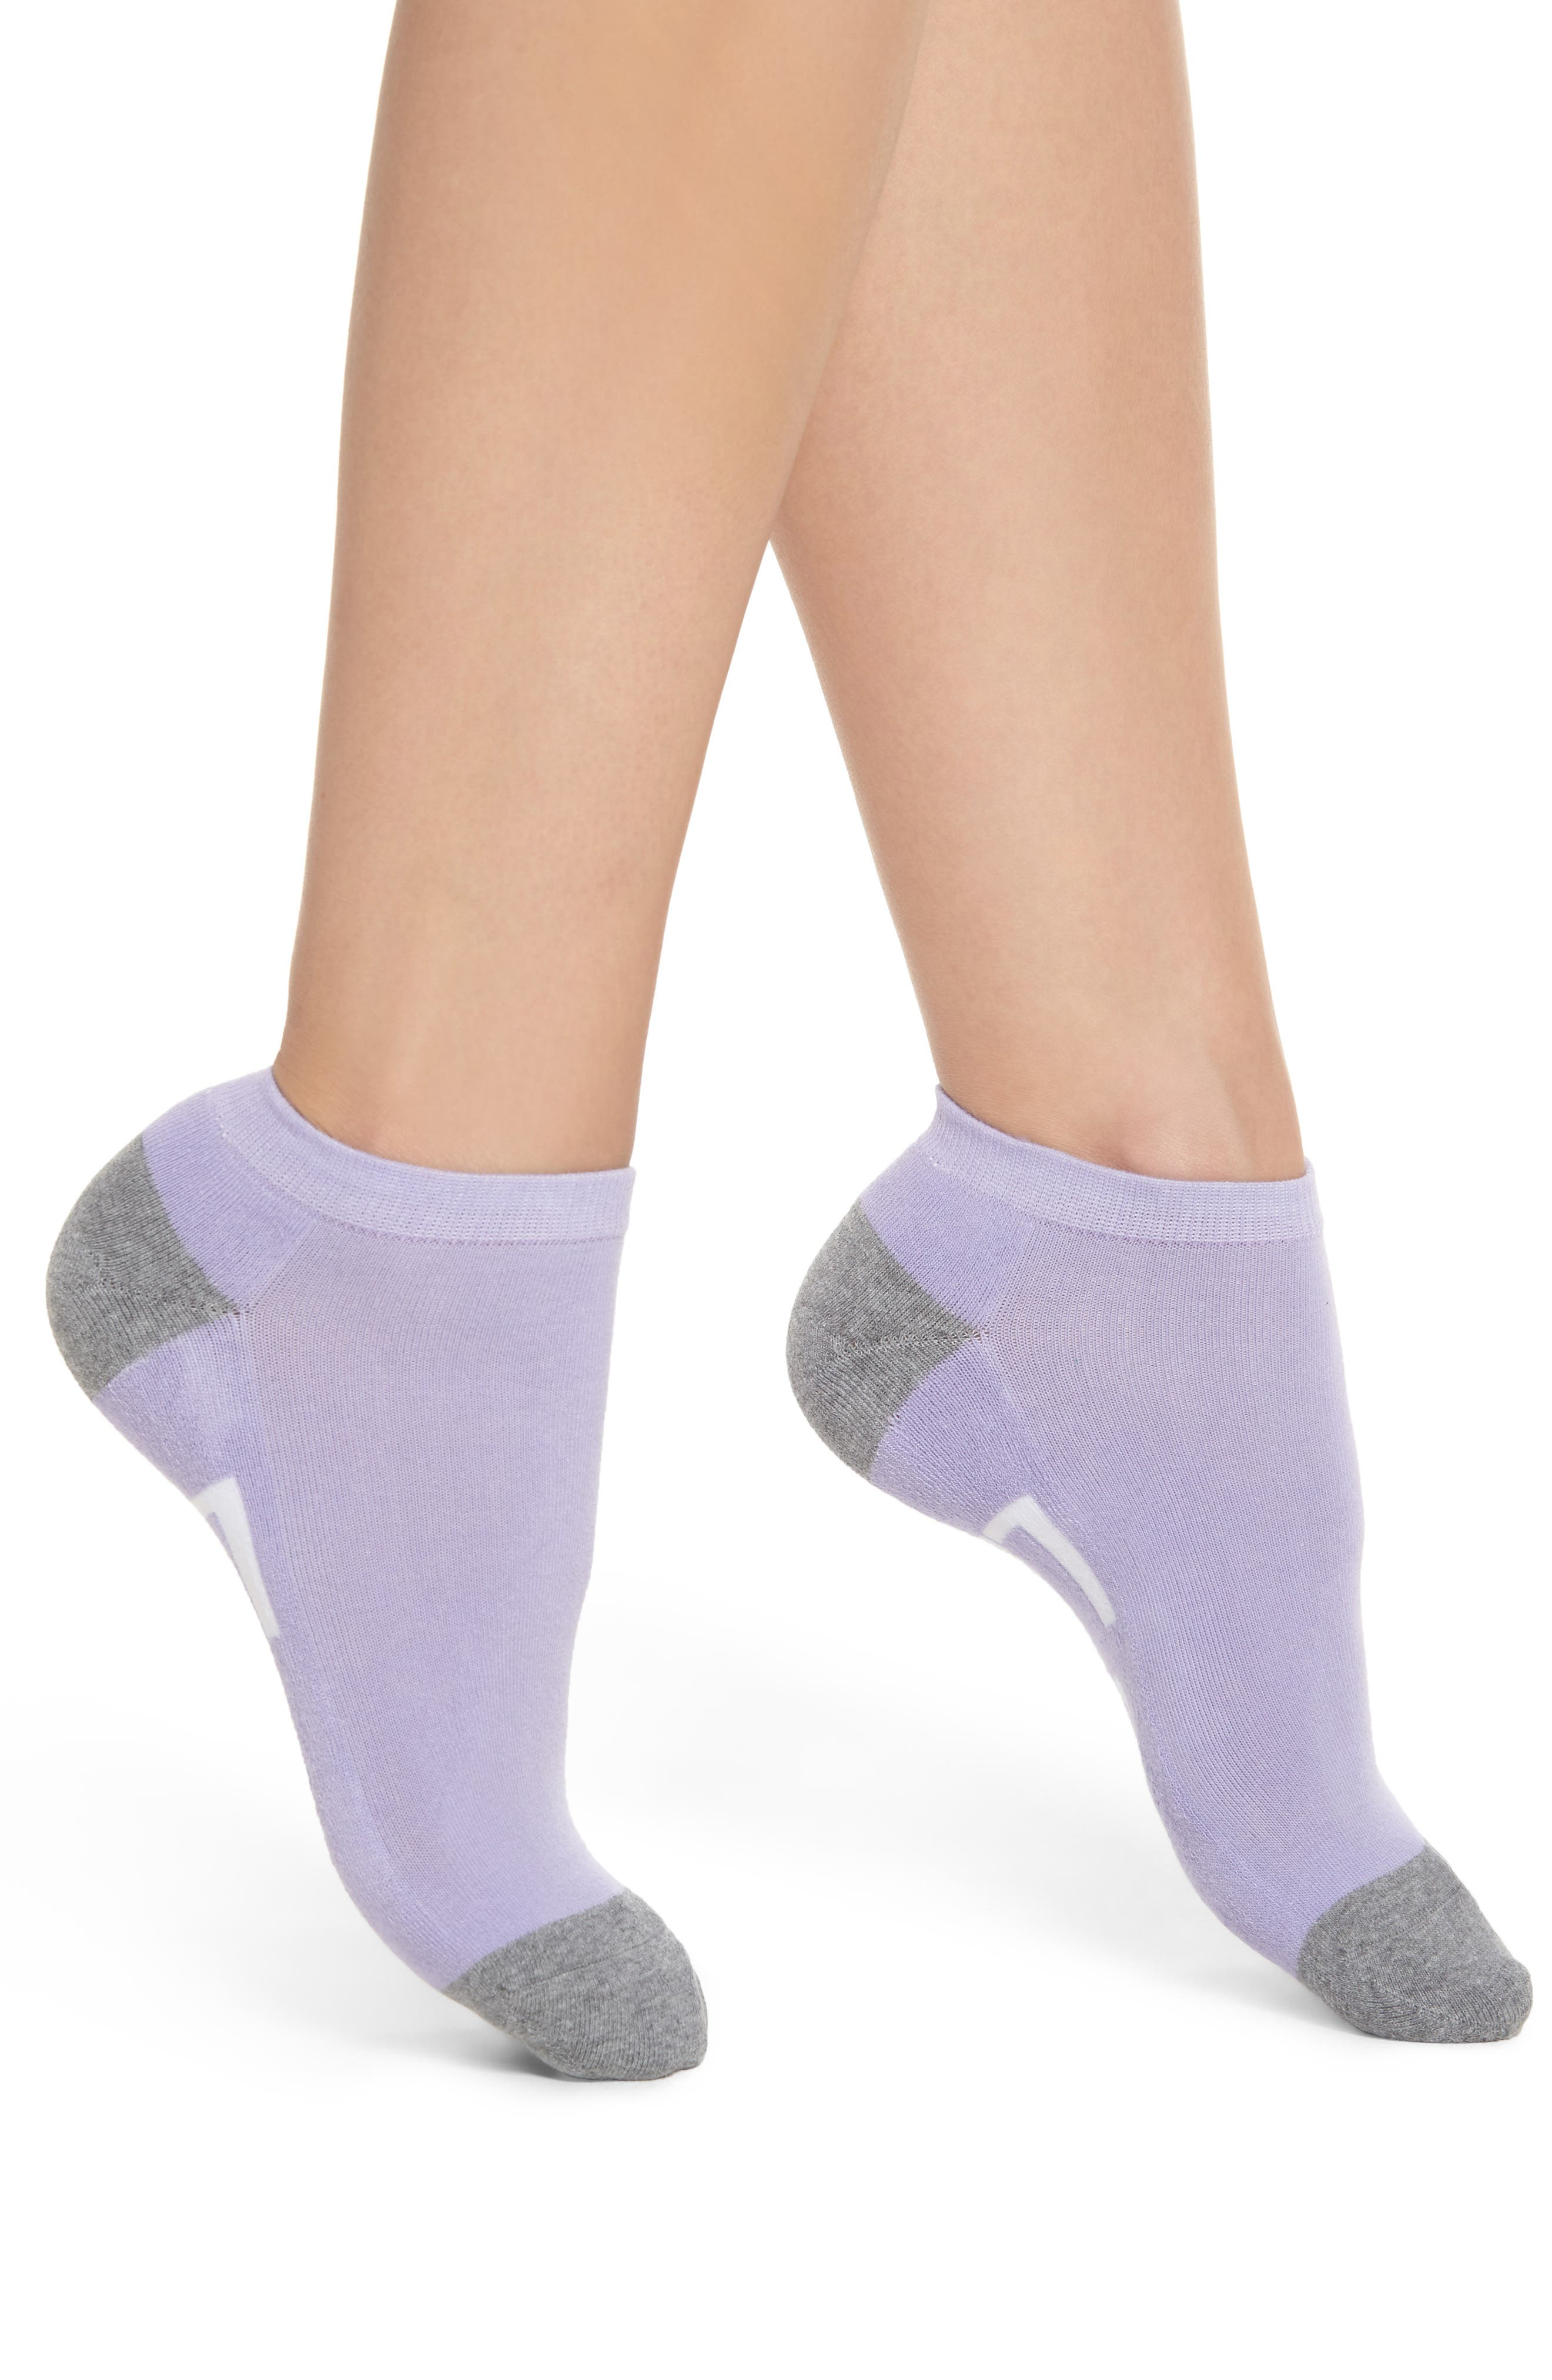 Cat Lady Ankle Socks,                         Main,                         color,